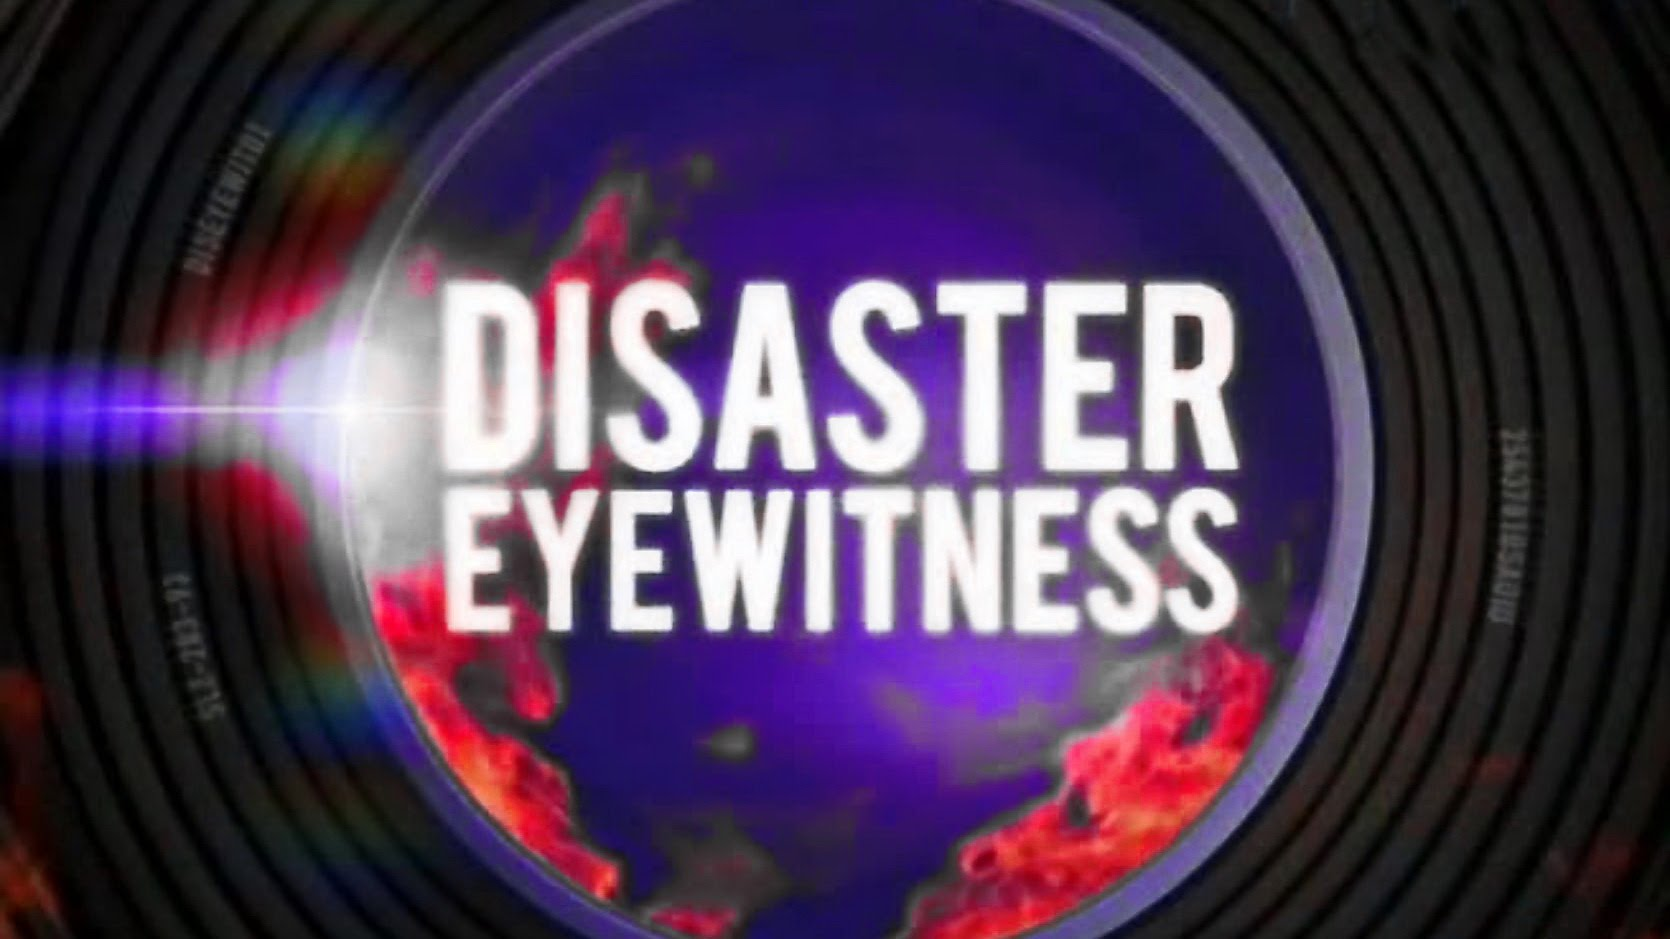 Очевидцы катастроф 8 / Disaster Eyewitness (2009)